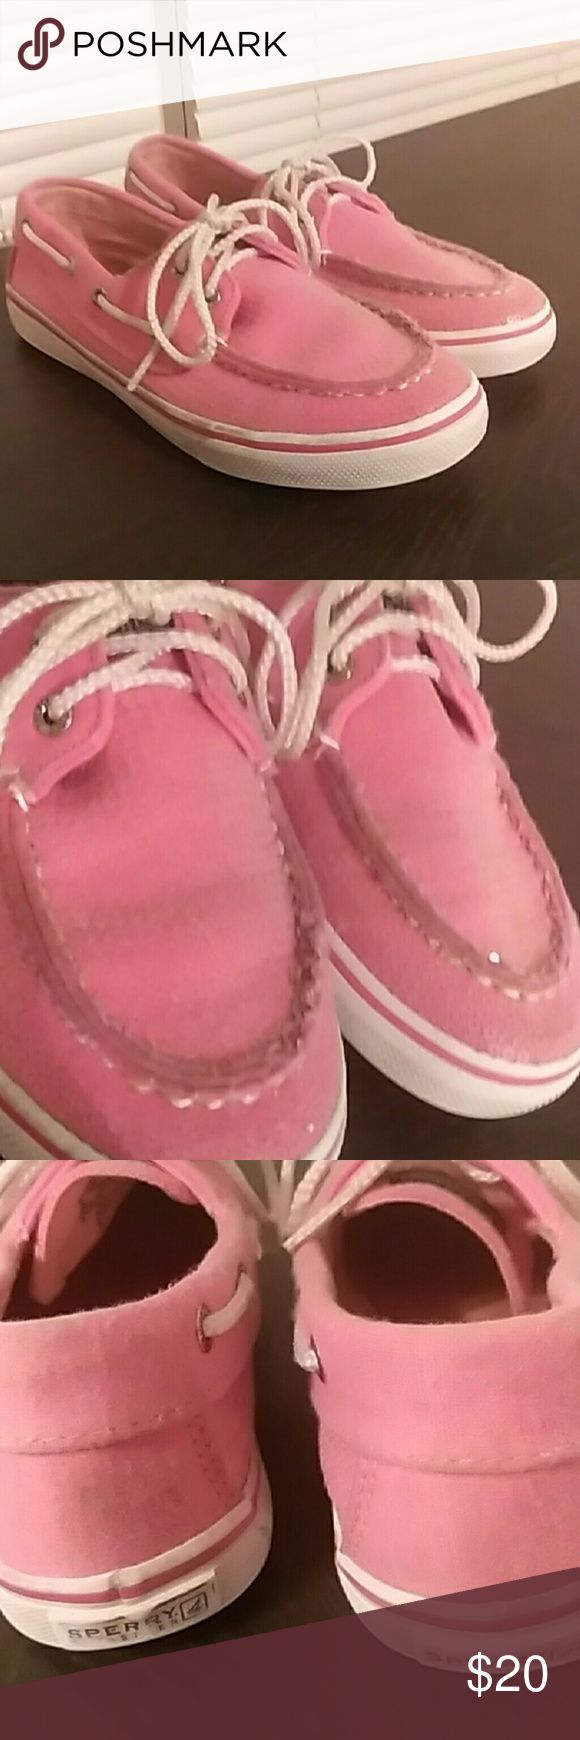 Girls Pink Sperry Top Siders Size 3.5 Bubble gum pink Sperrys in good condition with no stains or tears and comes from a smoke and pet free. Has minor scuffing that could be removed. Shoes have been worn for a couple of months but has tons of life left! From a smoke and pet free home. Sperry Top-Sider Shoes